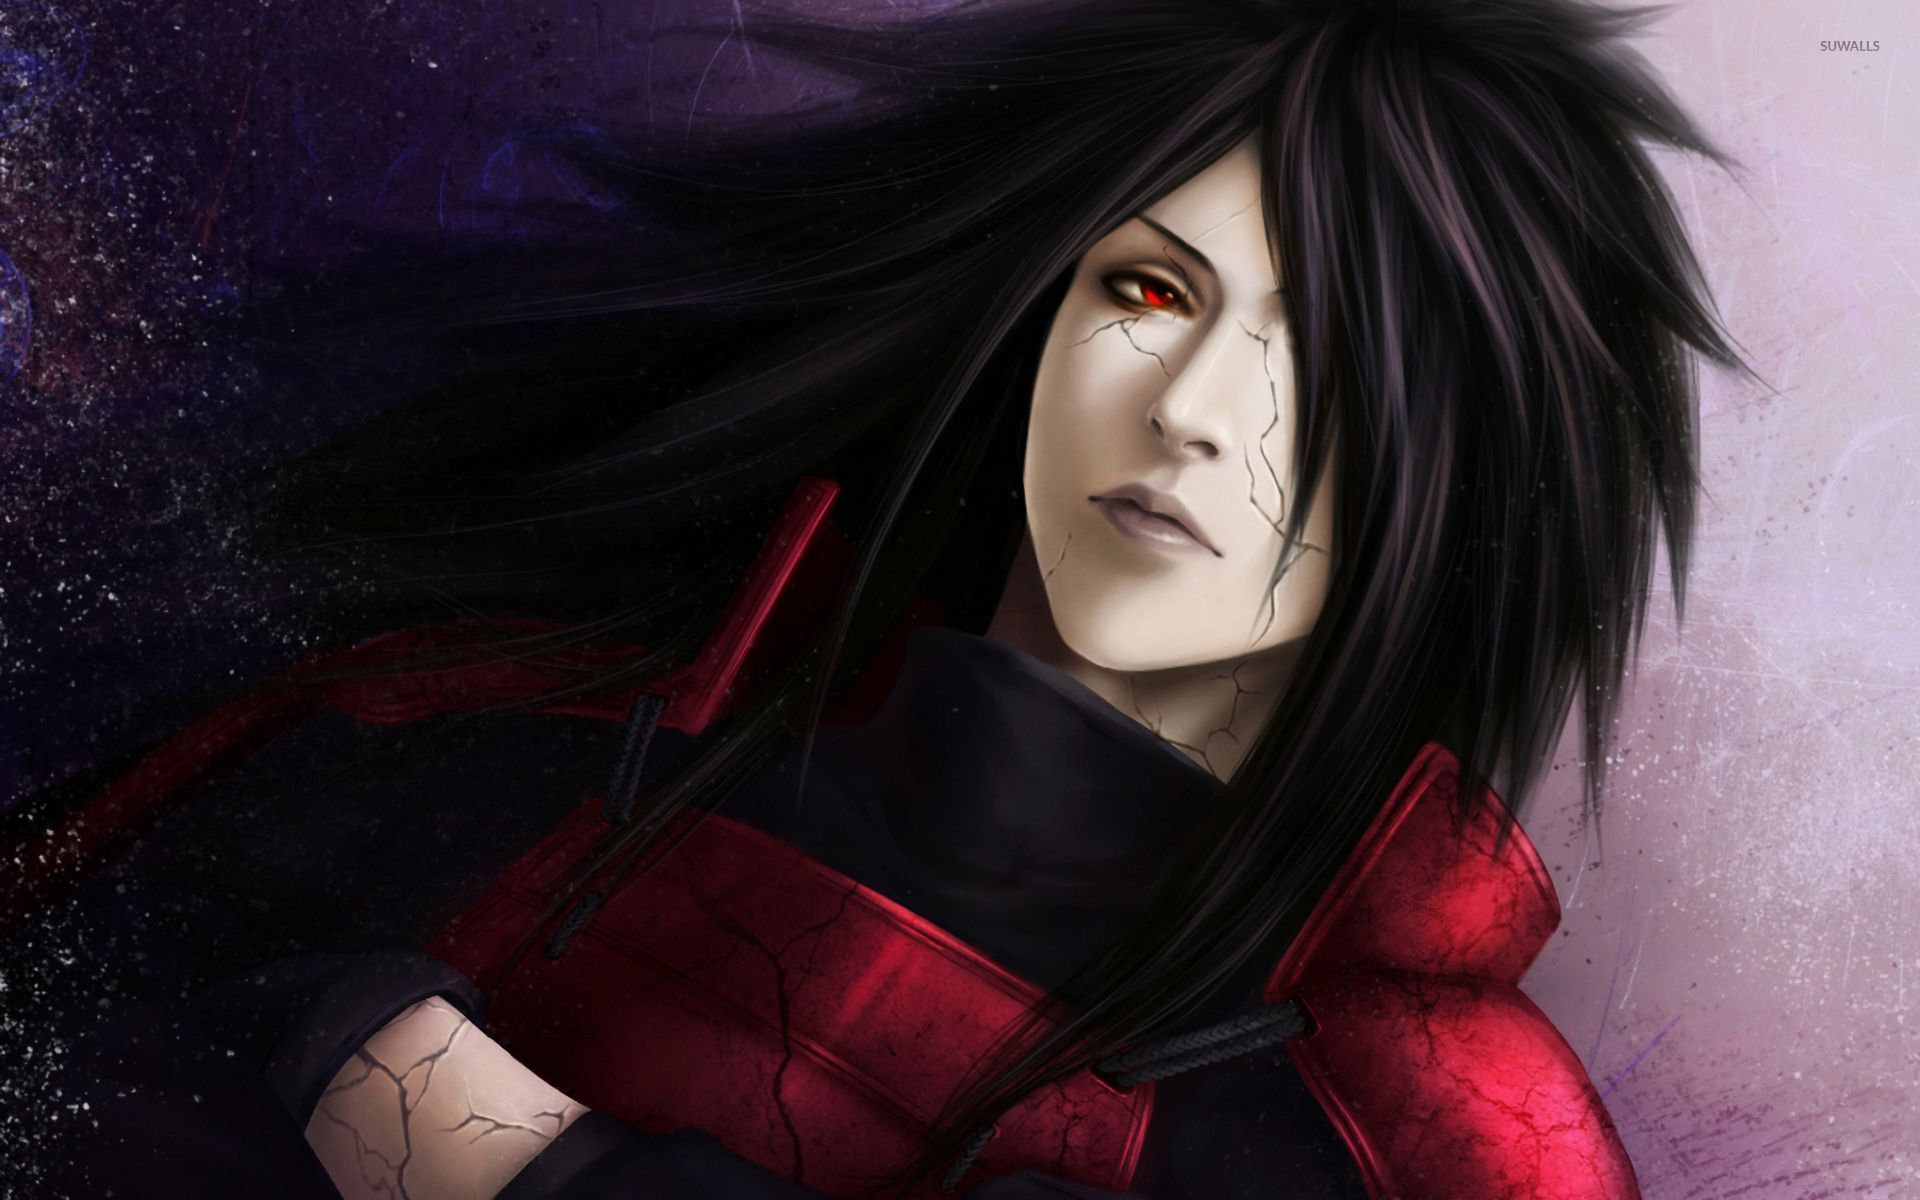 3d Dragon Eye Wallpaper Madara Uchiha Naruto 4 Wallpaper Anime Wallpapers